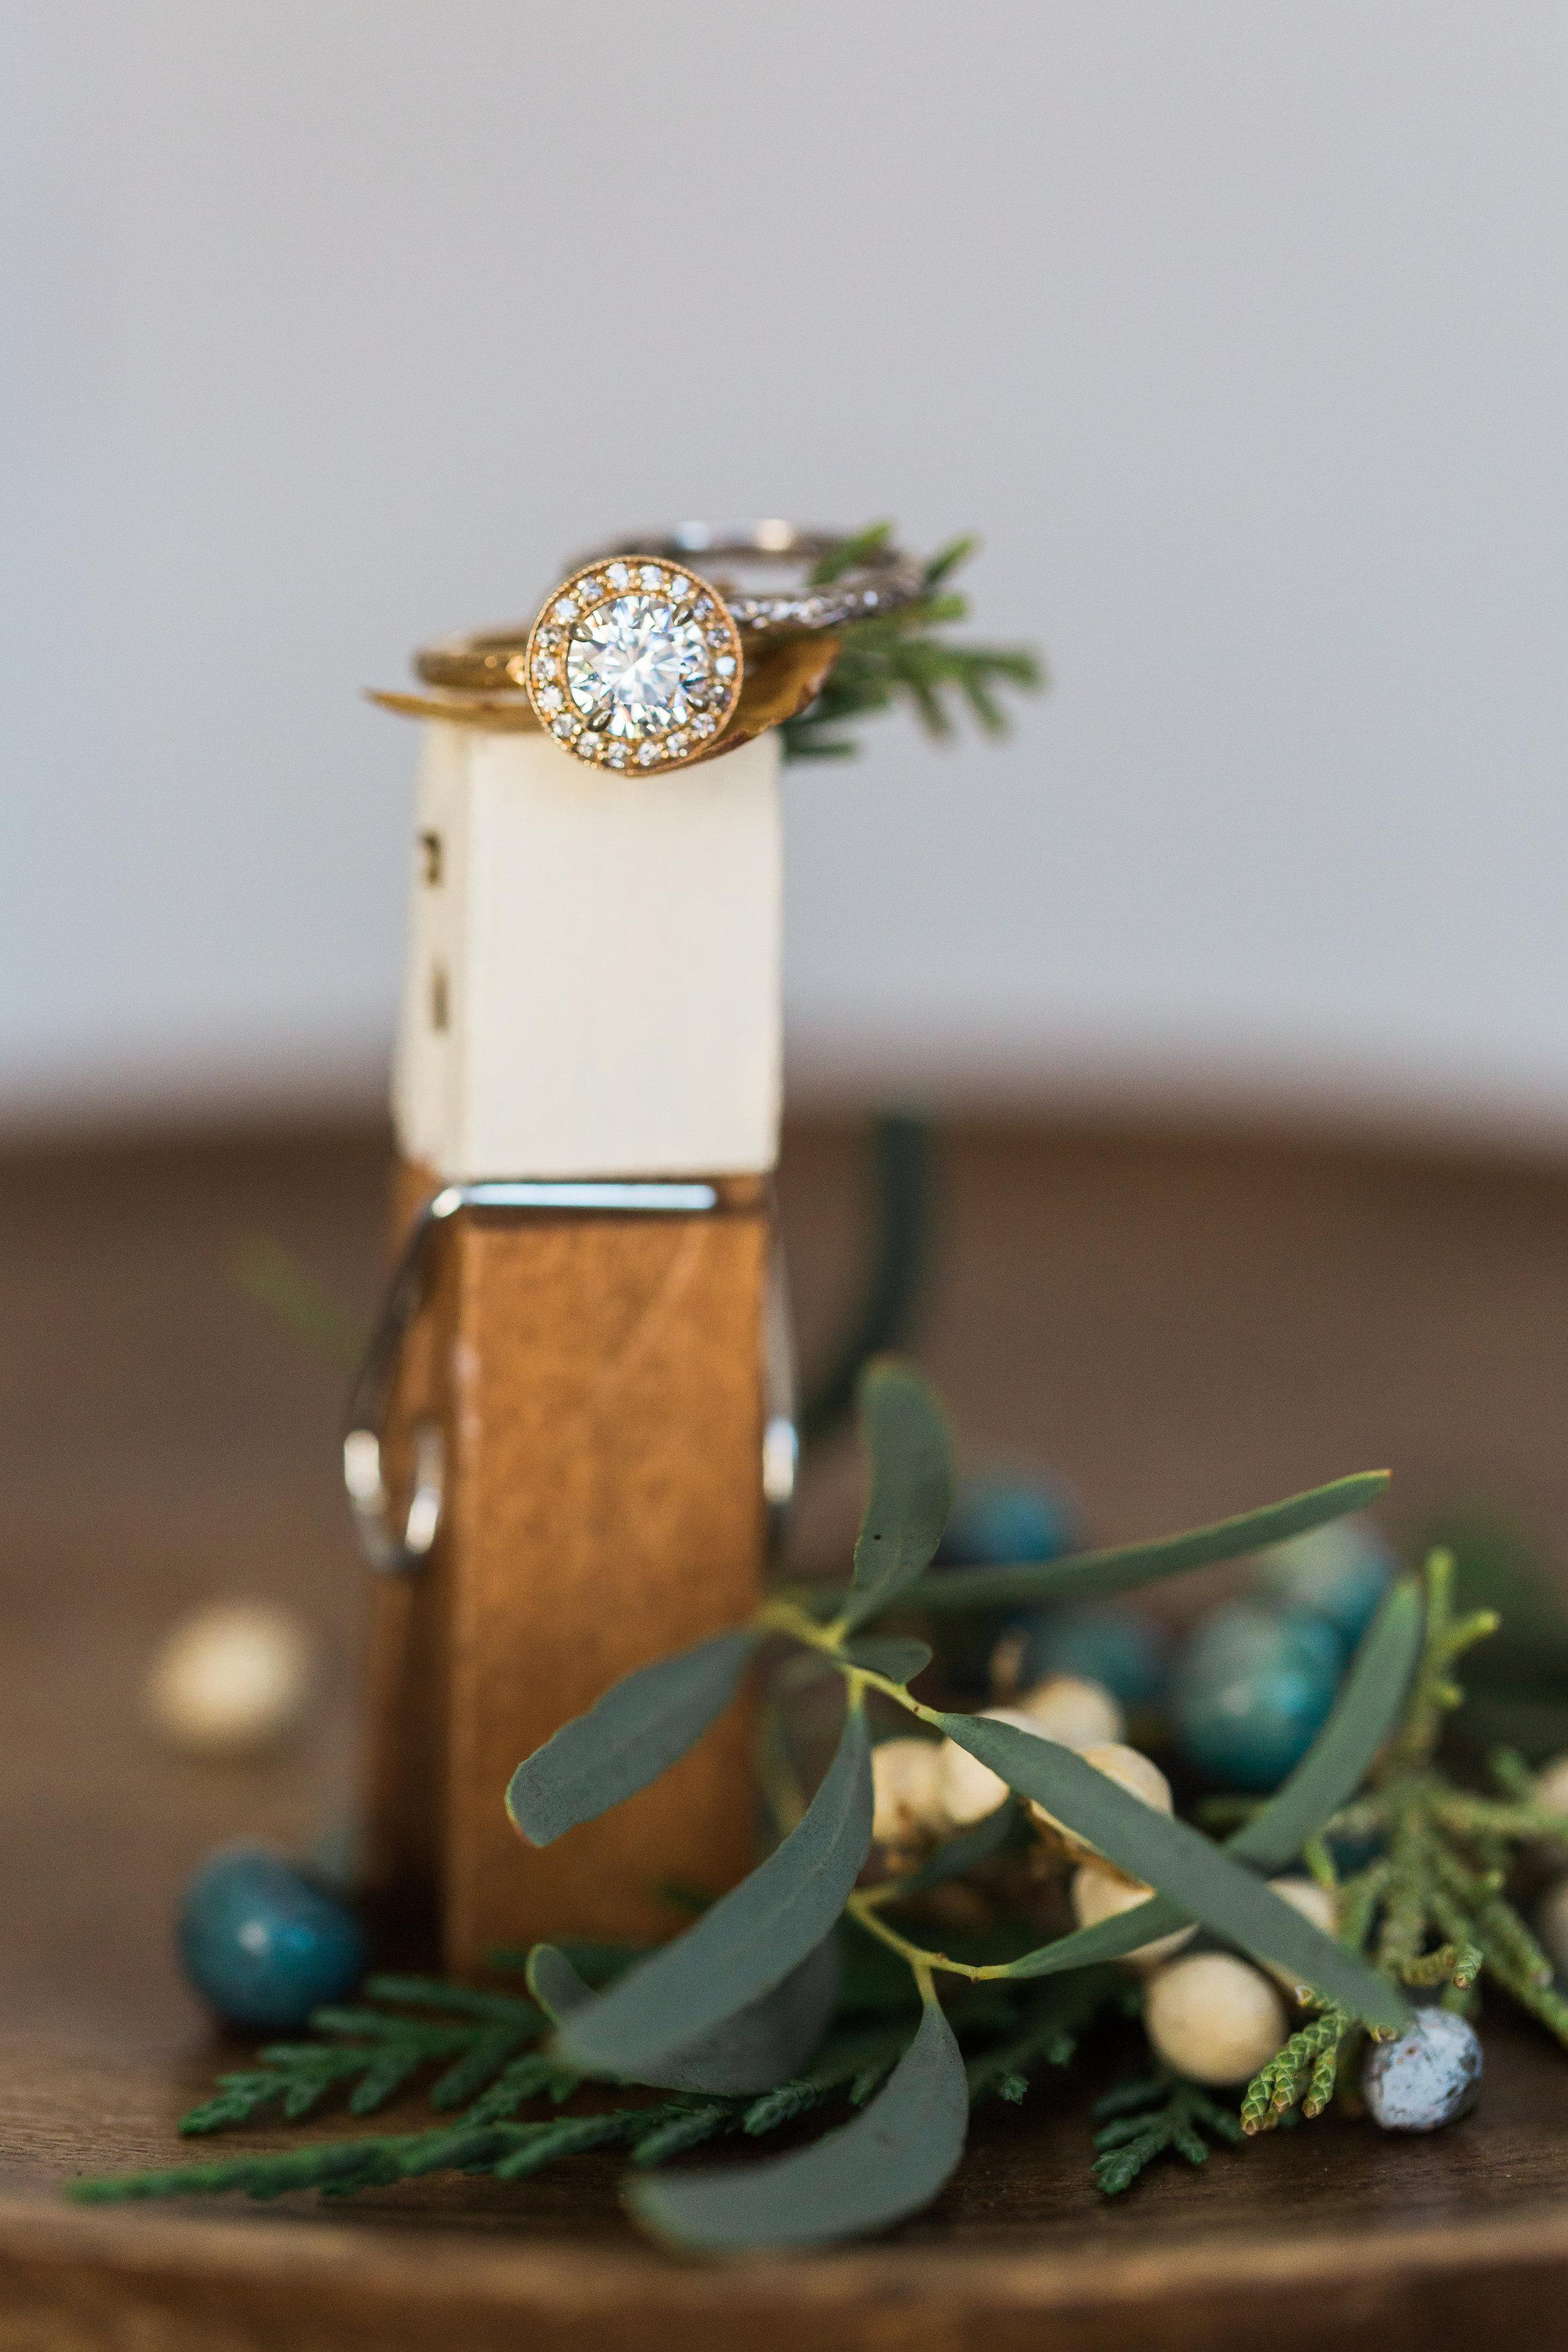 Harry Merrill & Son RIng Shopping Onlinve .vs. In Store